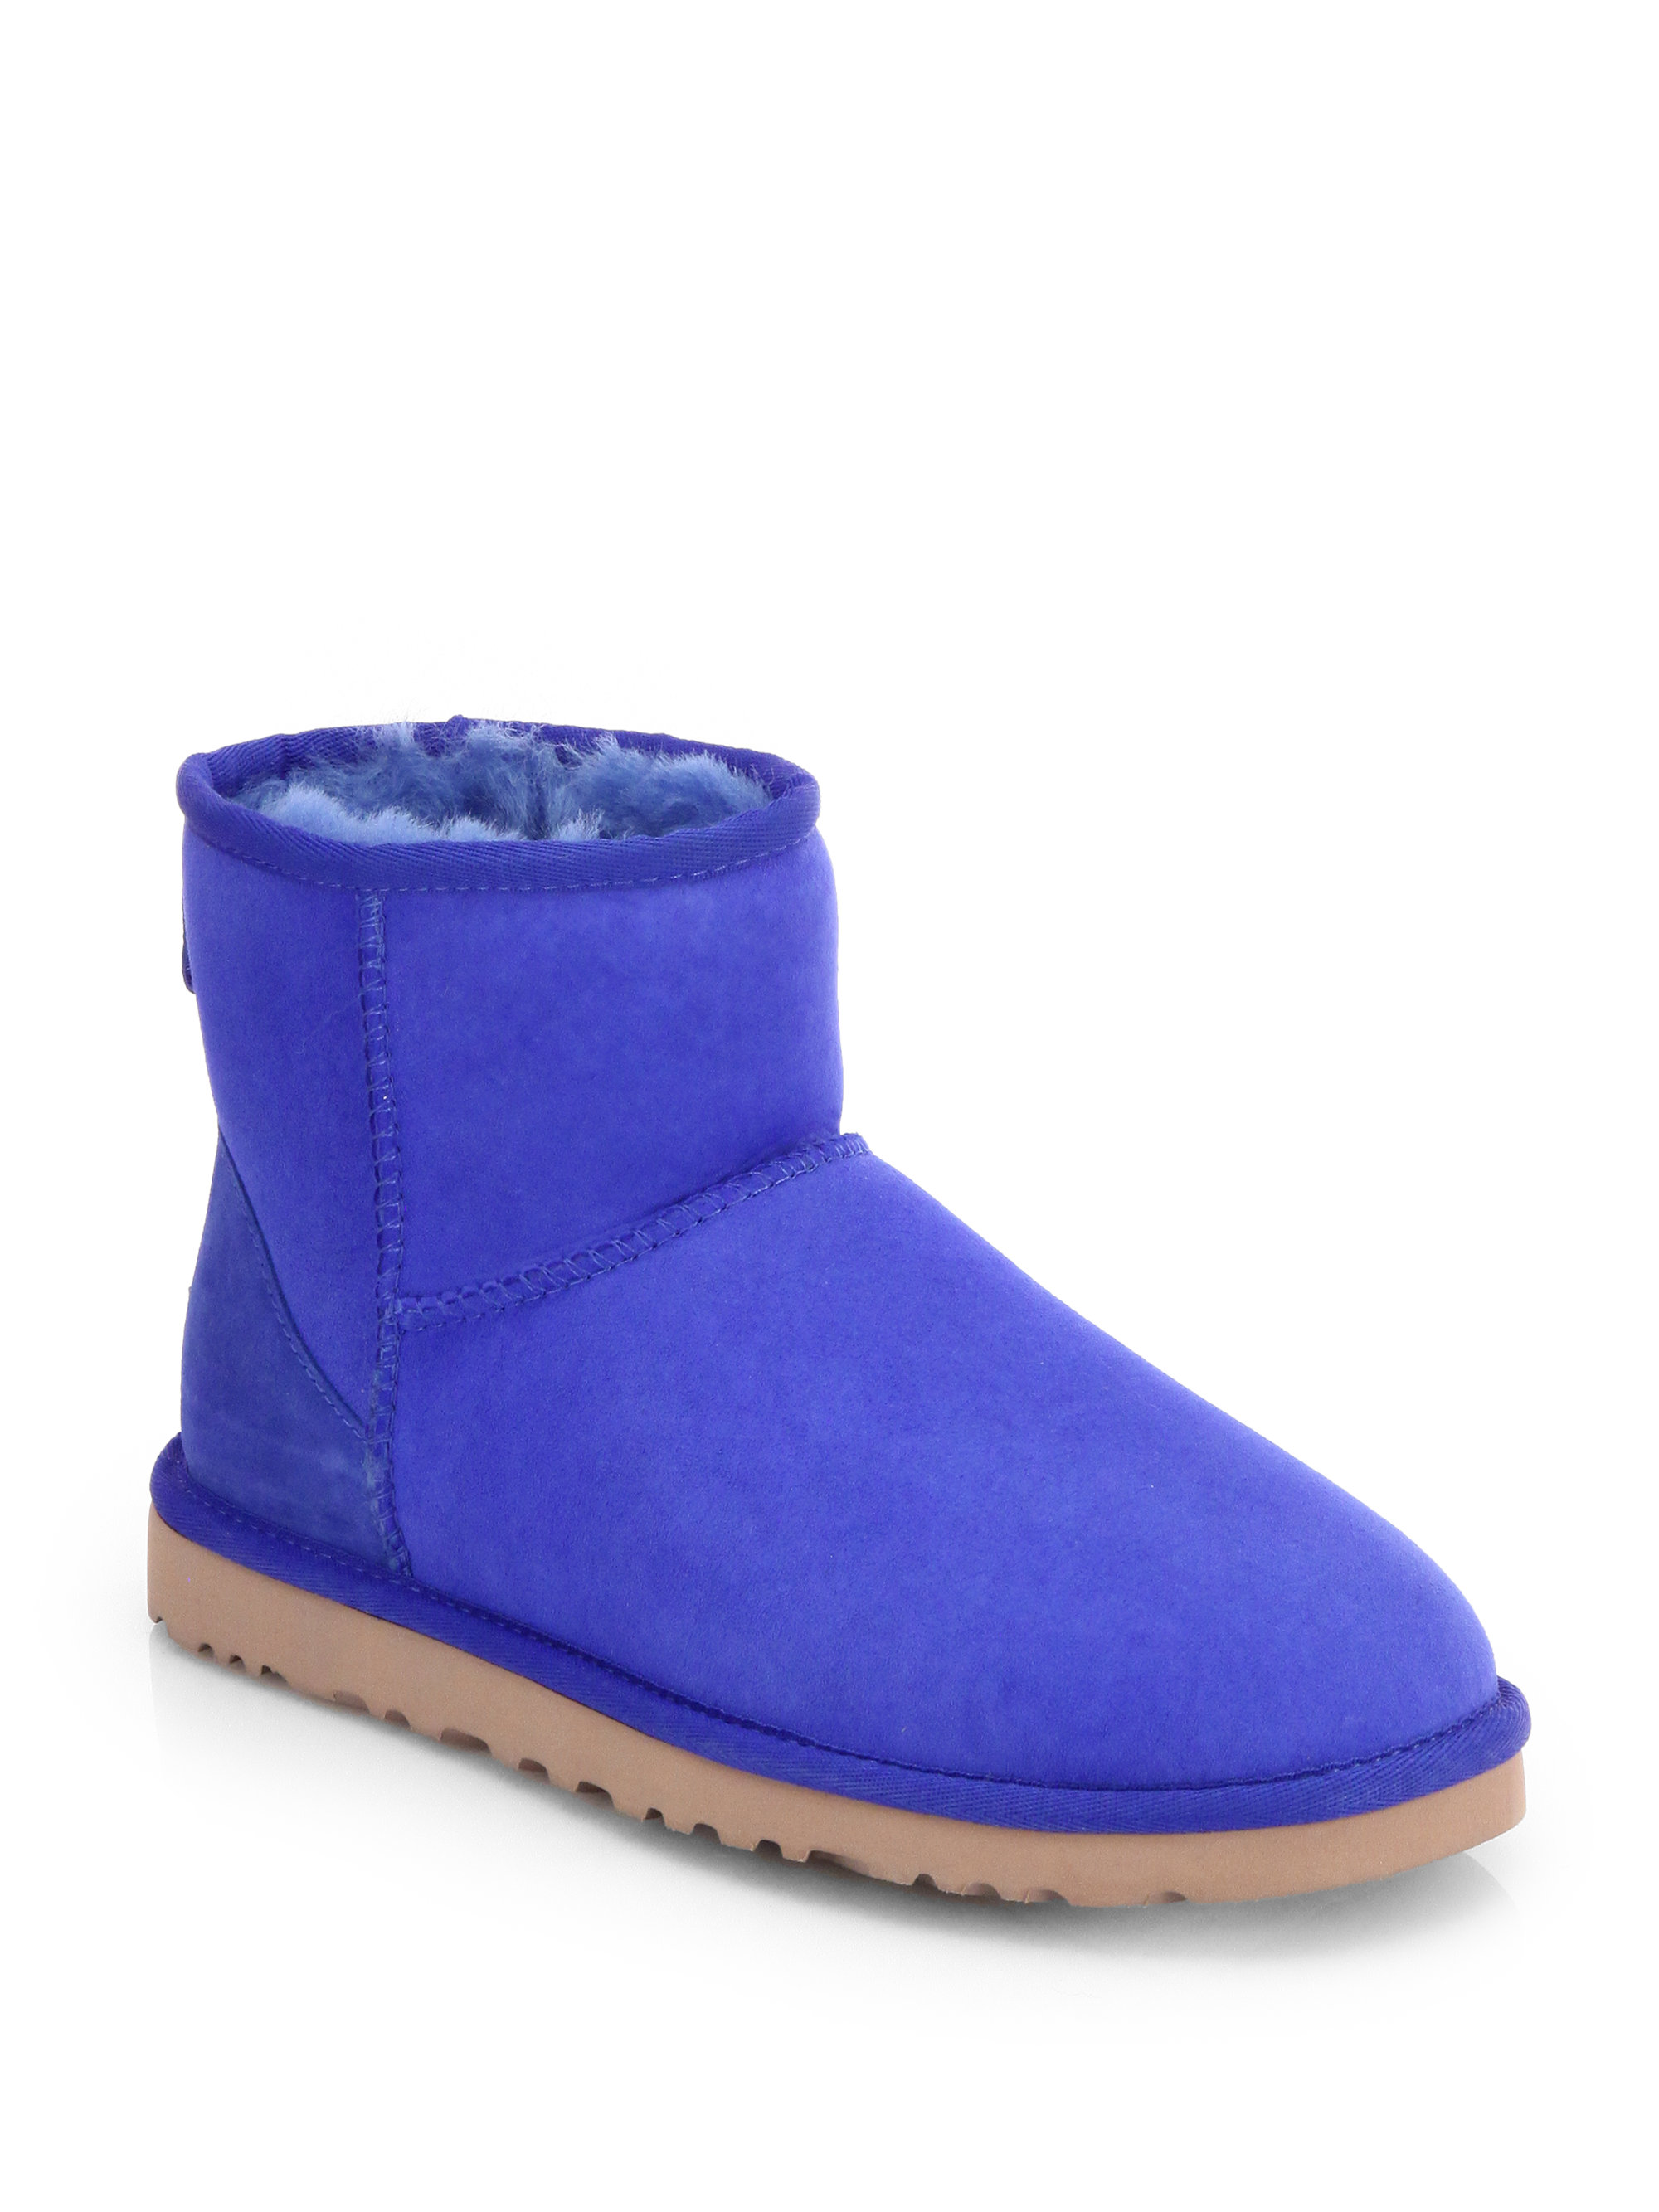 ugg classic mini suede boots in blue electric blue lyst. Black Bedroom Furniture Sets. Home Design Ideas